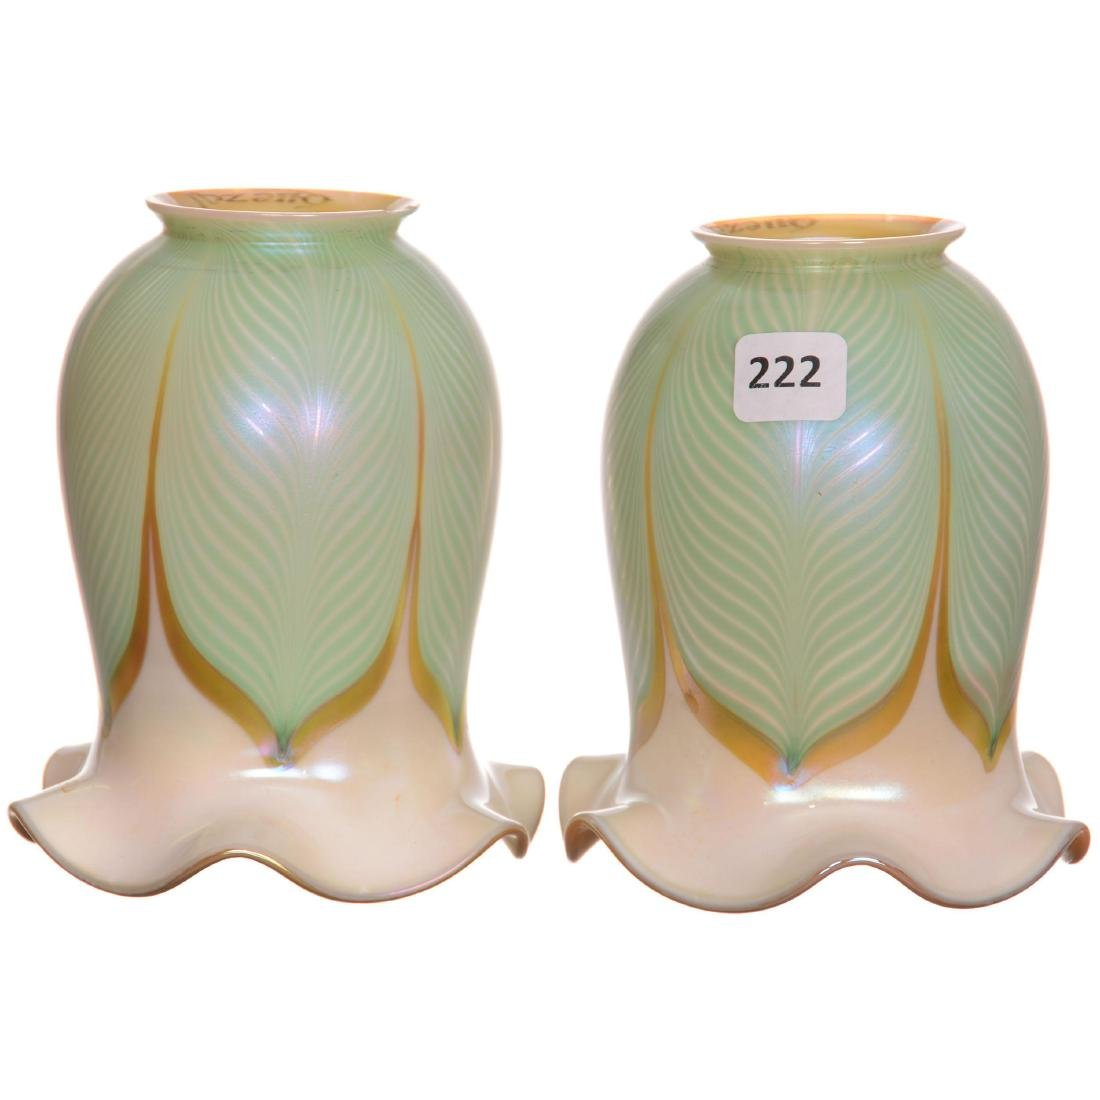 (2) Art Glass Lamp Shades